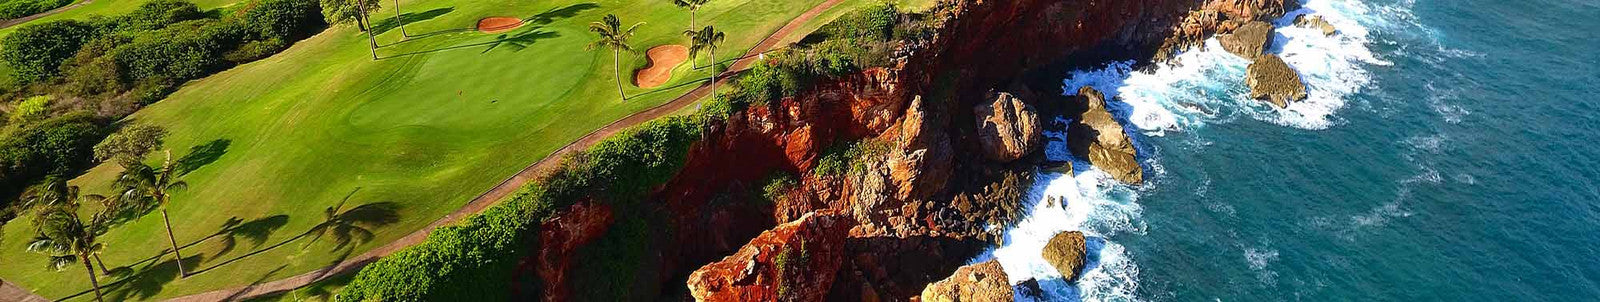 KAUAI GOLF CHALLENGE - ONLY $469